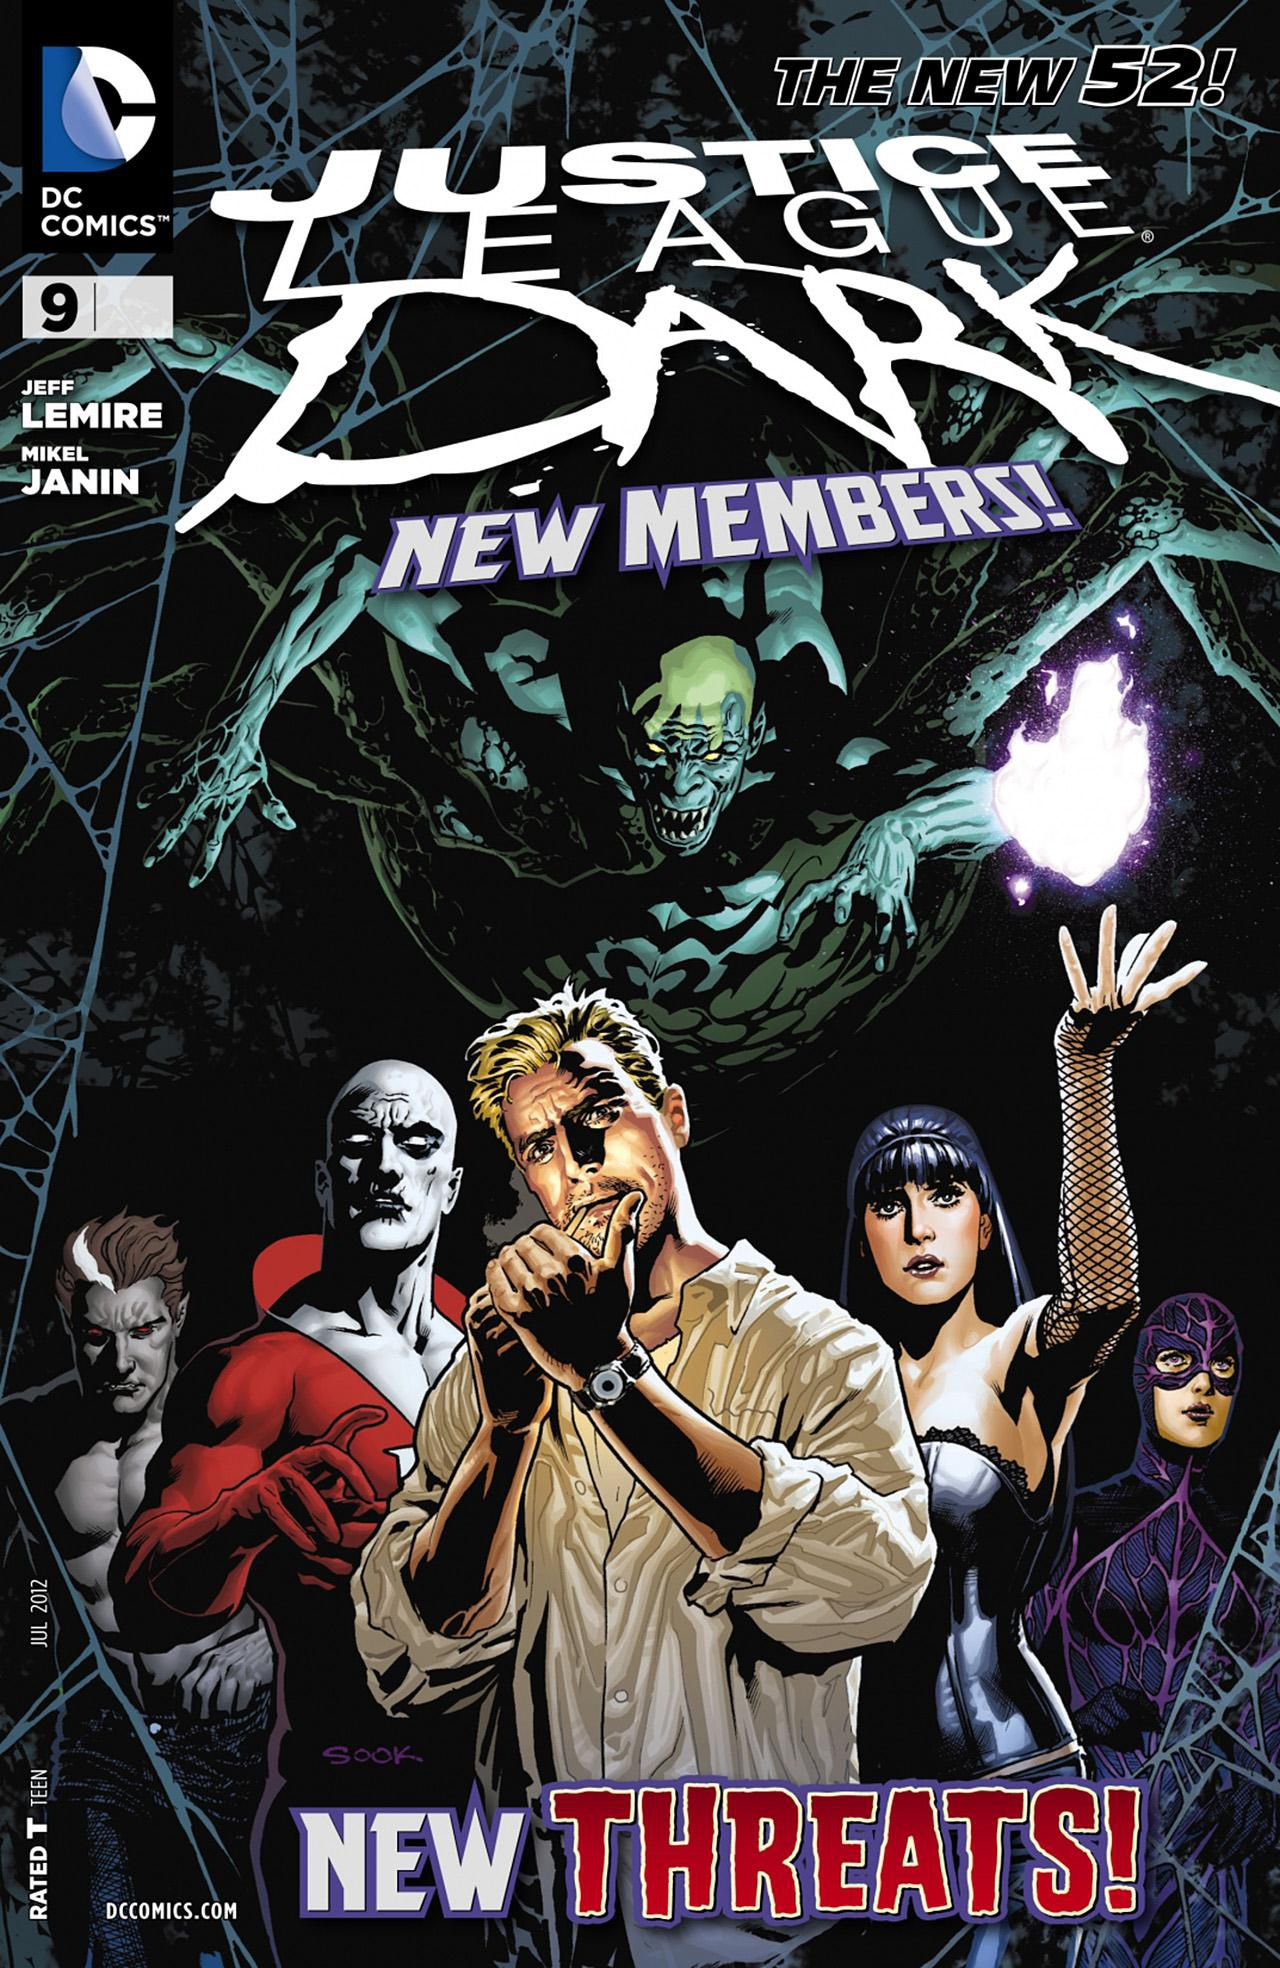 Couverture du comic Justice League Dark #9 (The New 52)